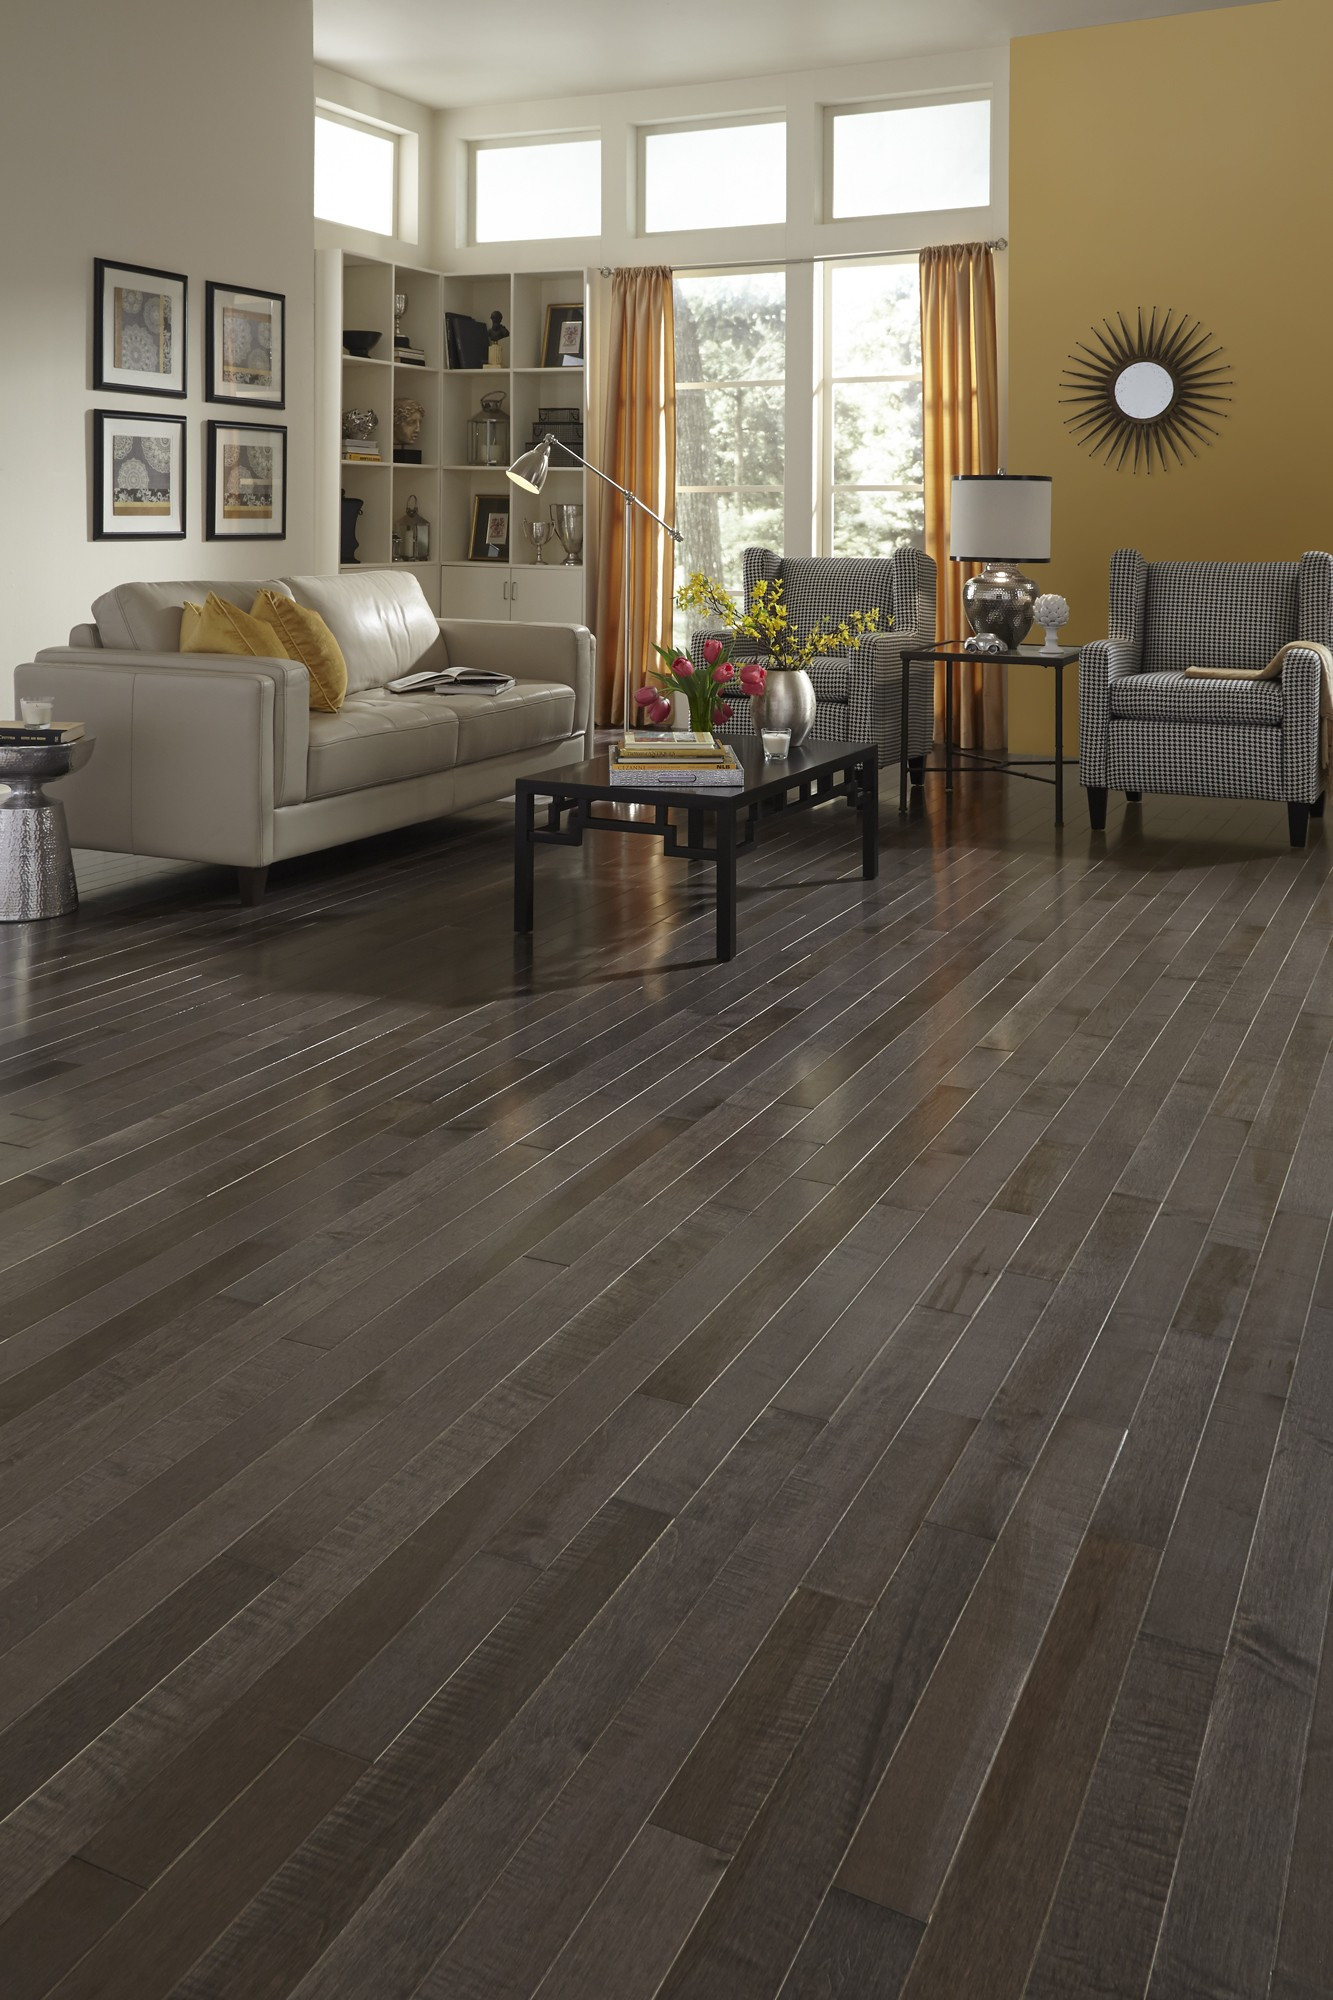 best hardwood floors los angeles of 15 elegant how much is hardwood flooring pics dizpos com regarding how much is hardwood flooring awesome august s top floors social gallery of 15 elegant how